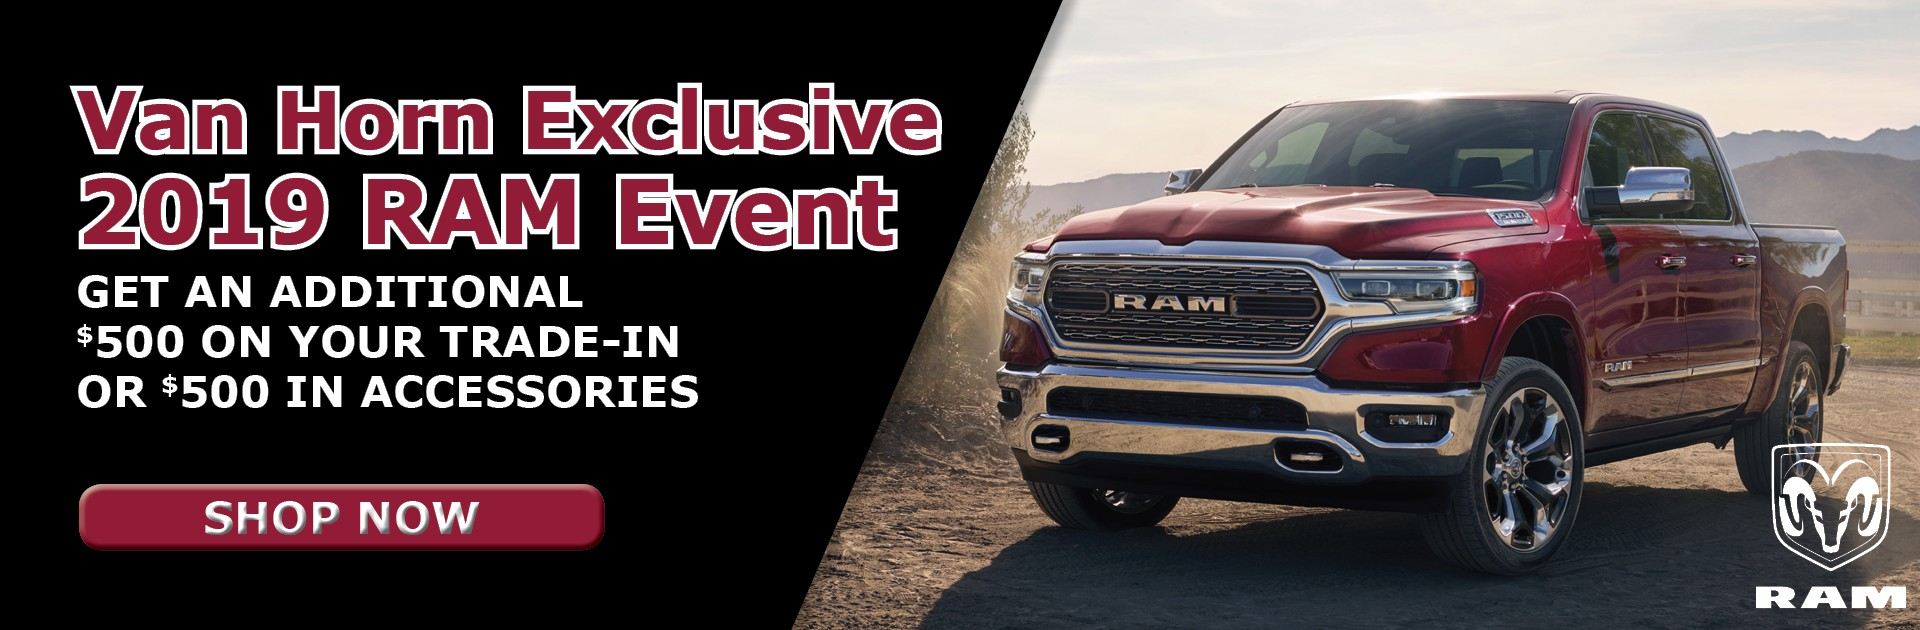 Van Horn Exclusive - 2019 Ram Event